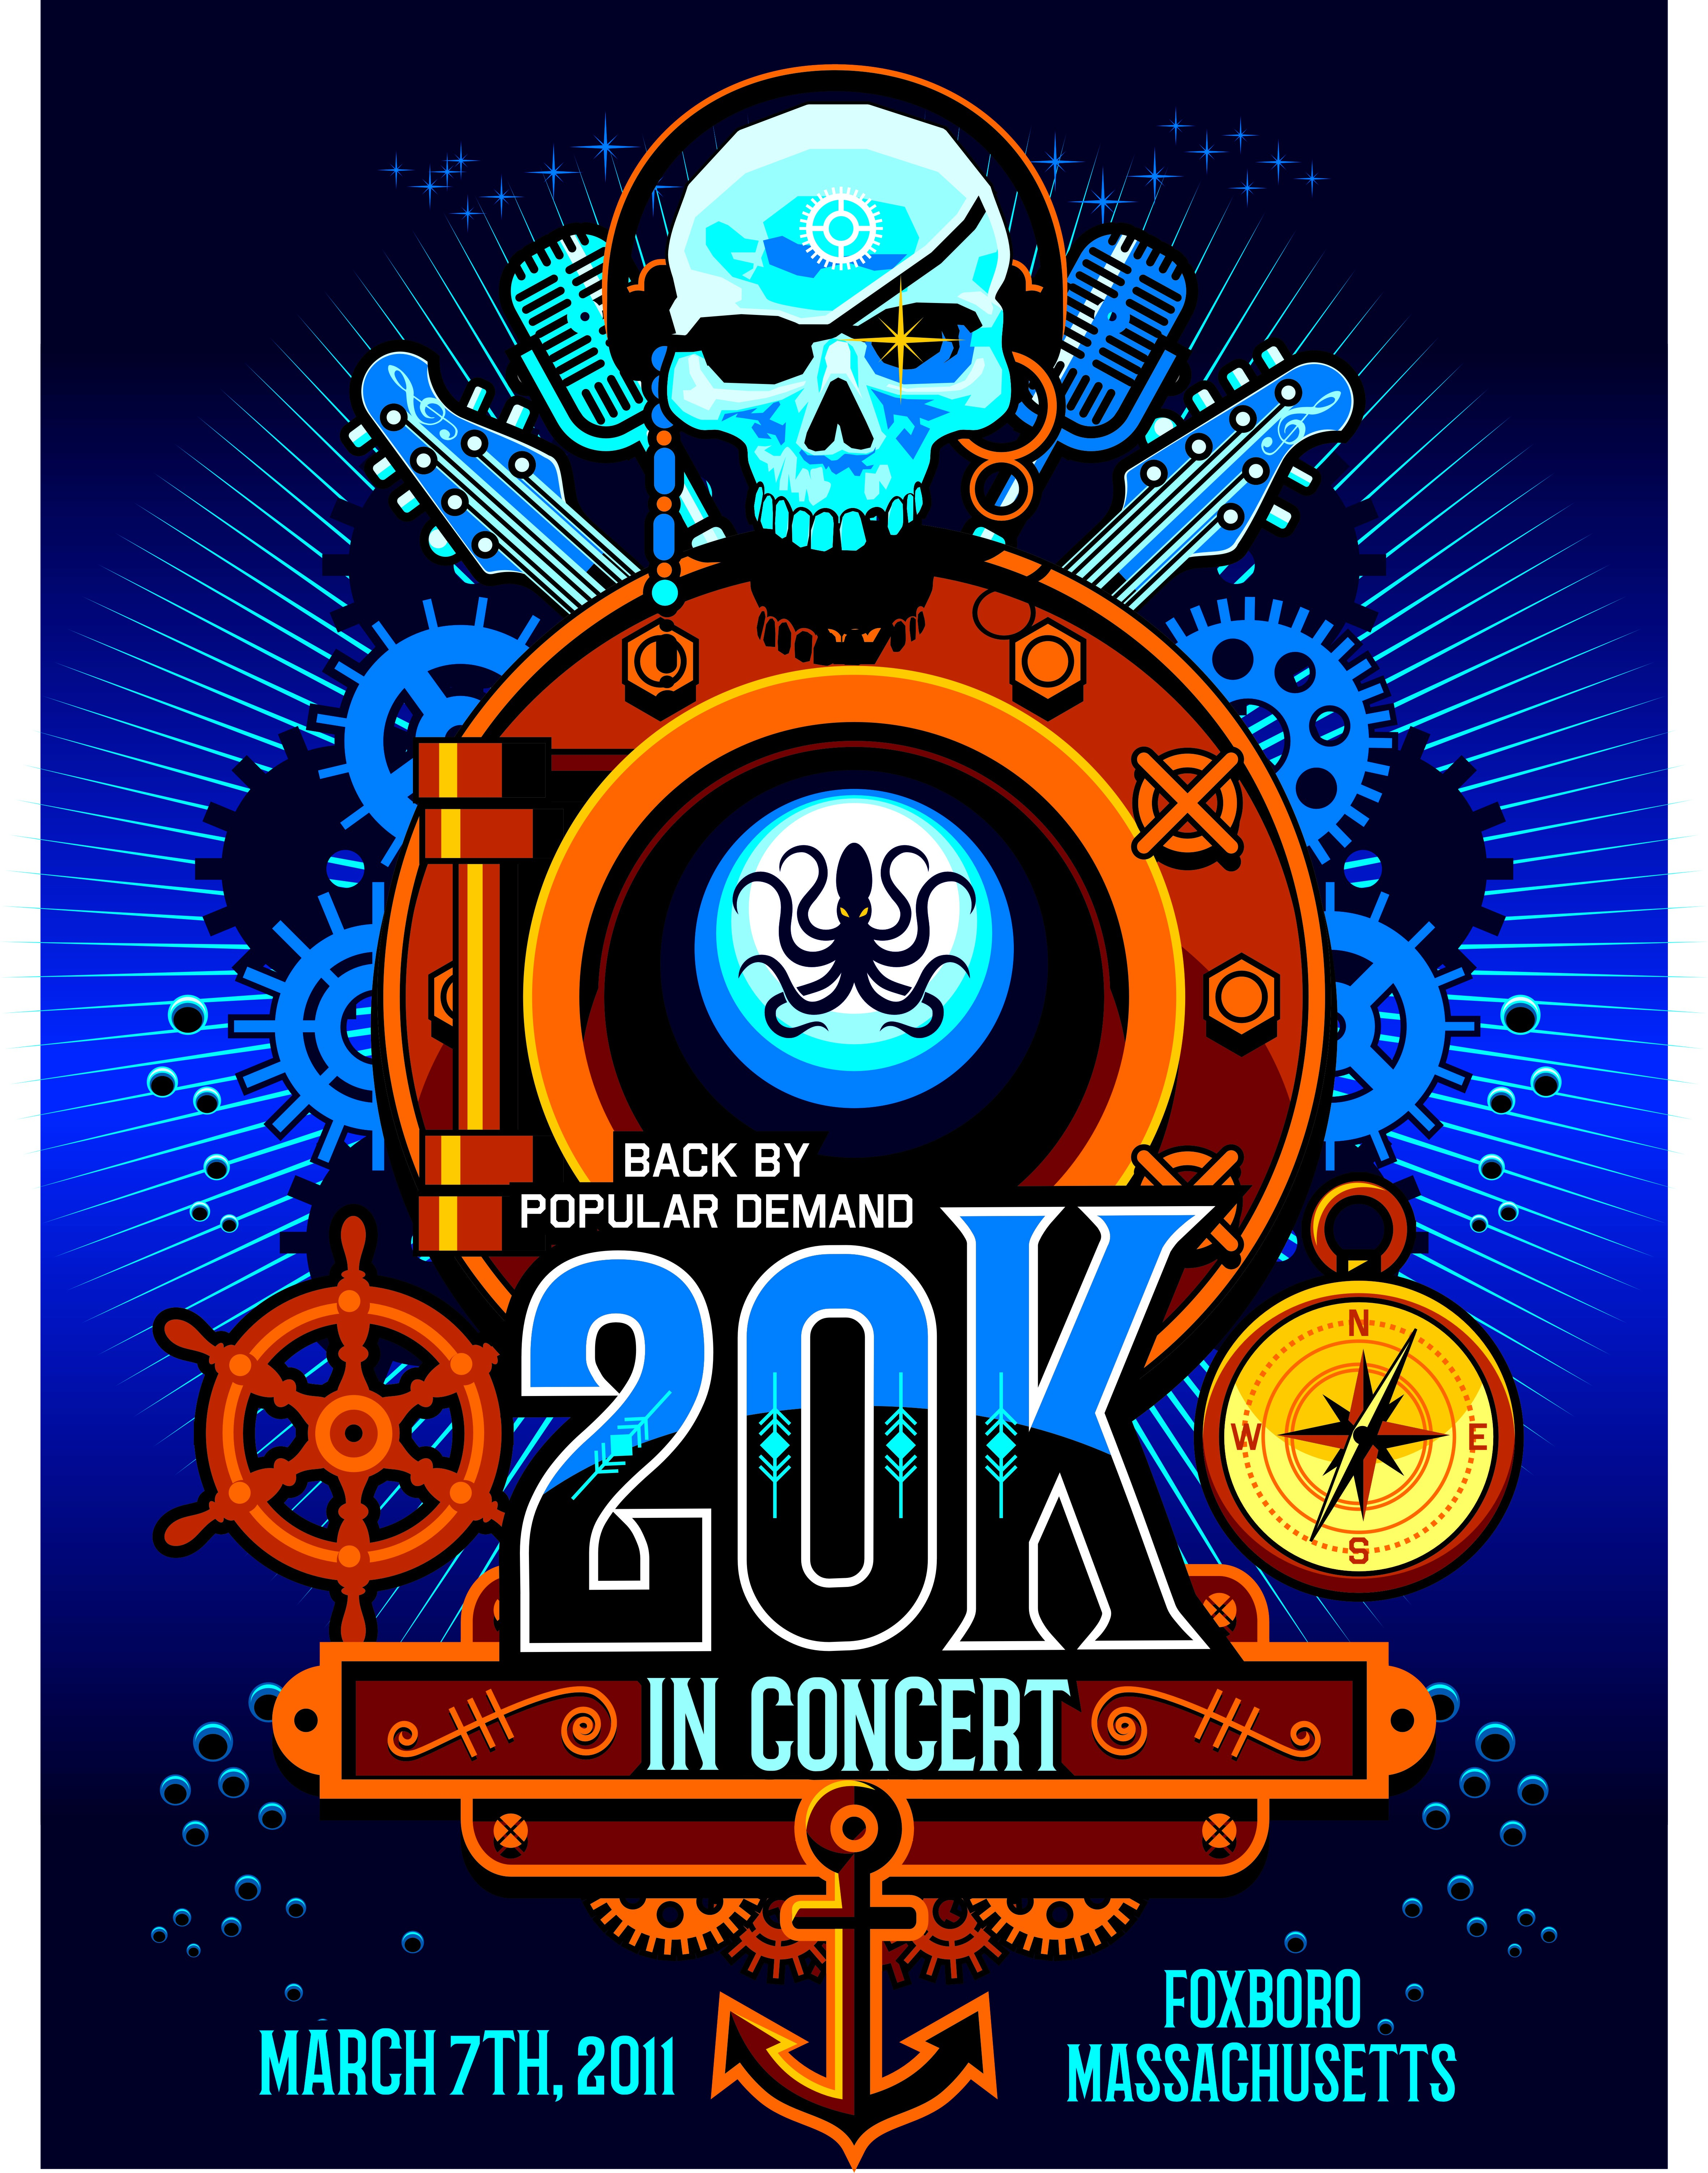 Steampunk Concert Poster, based on 20,000 Leagues Under The Sea!